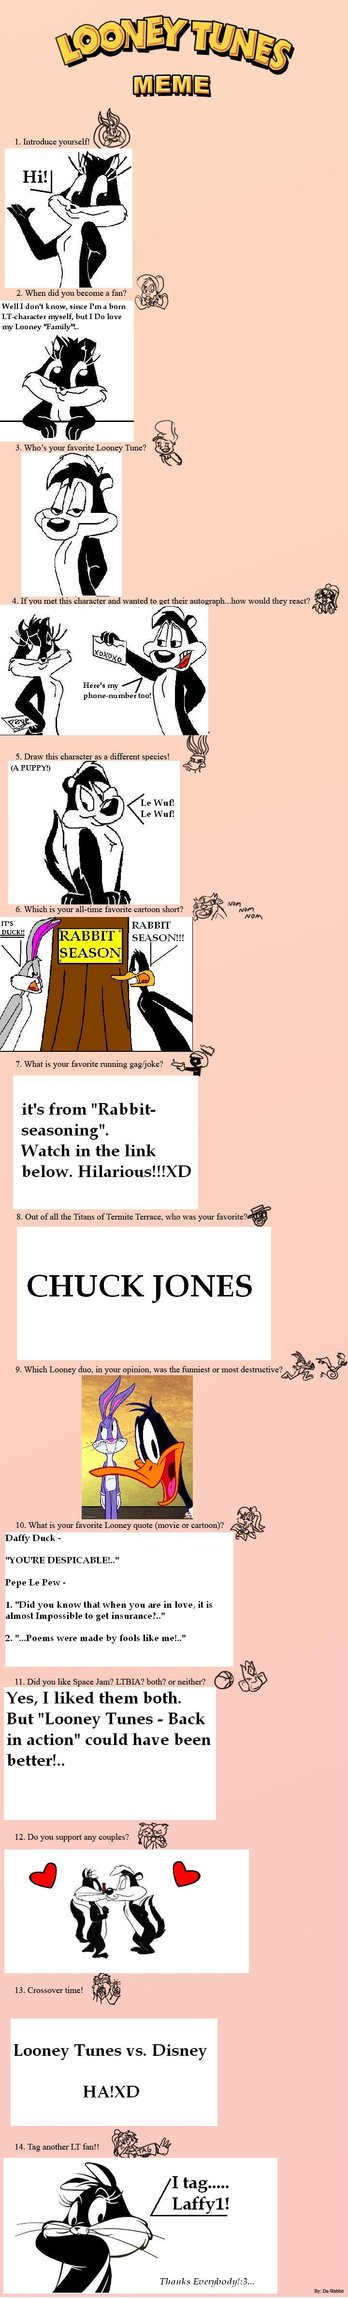 My Looney Tunes meme by MizzAmy15 348x2298